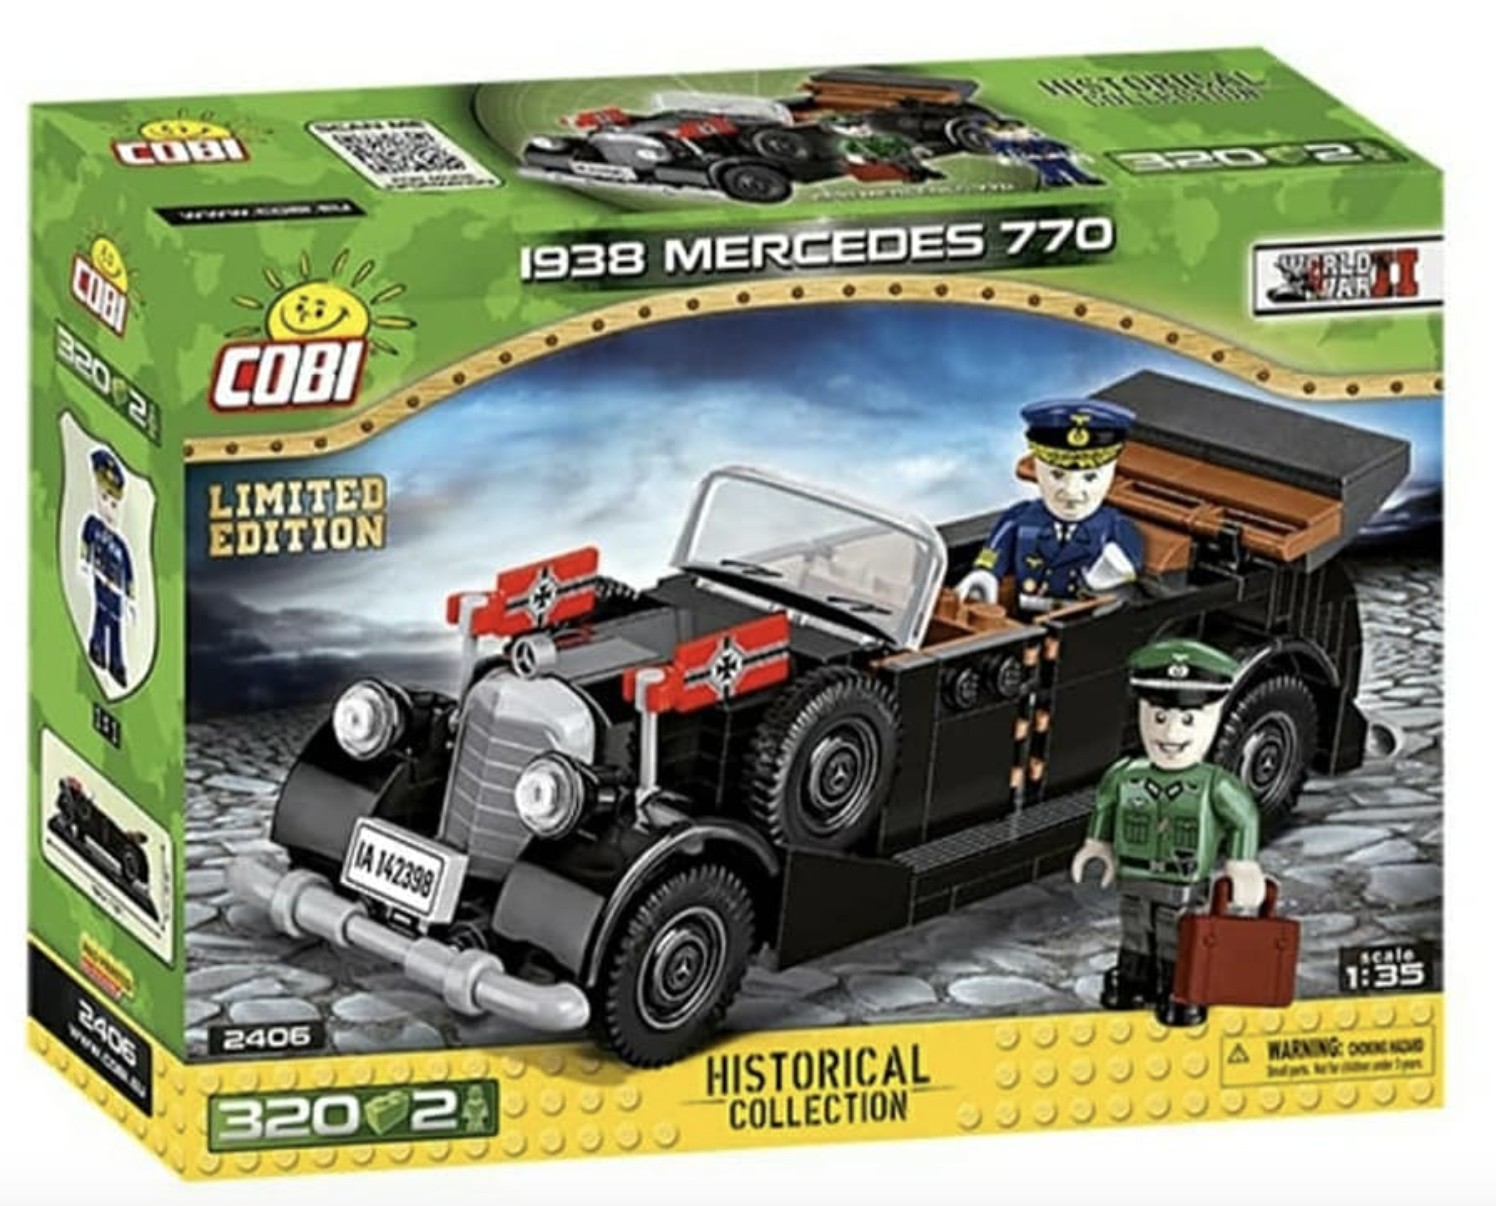 2406 - 1938 Mercedes 770 - Limited Edition